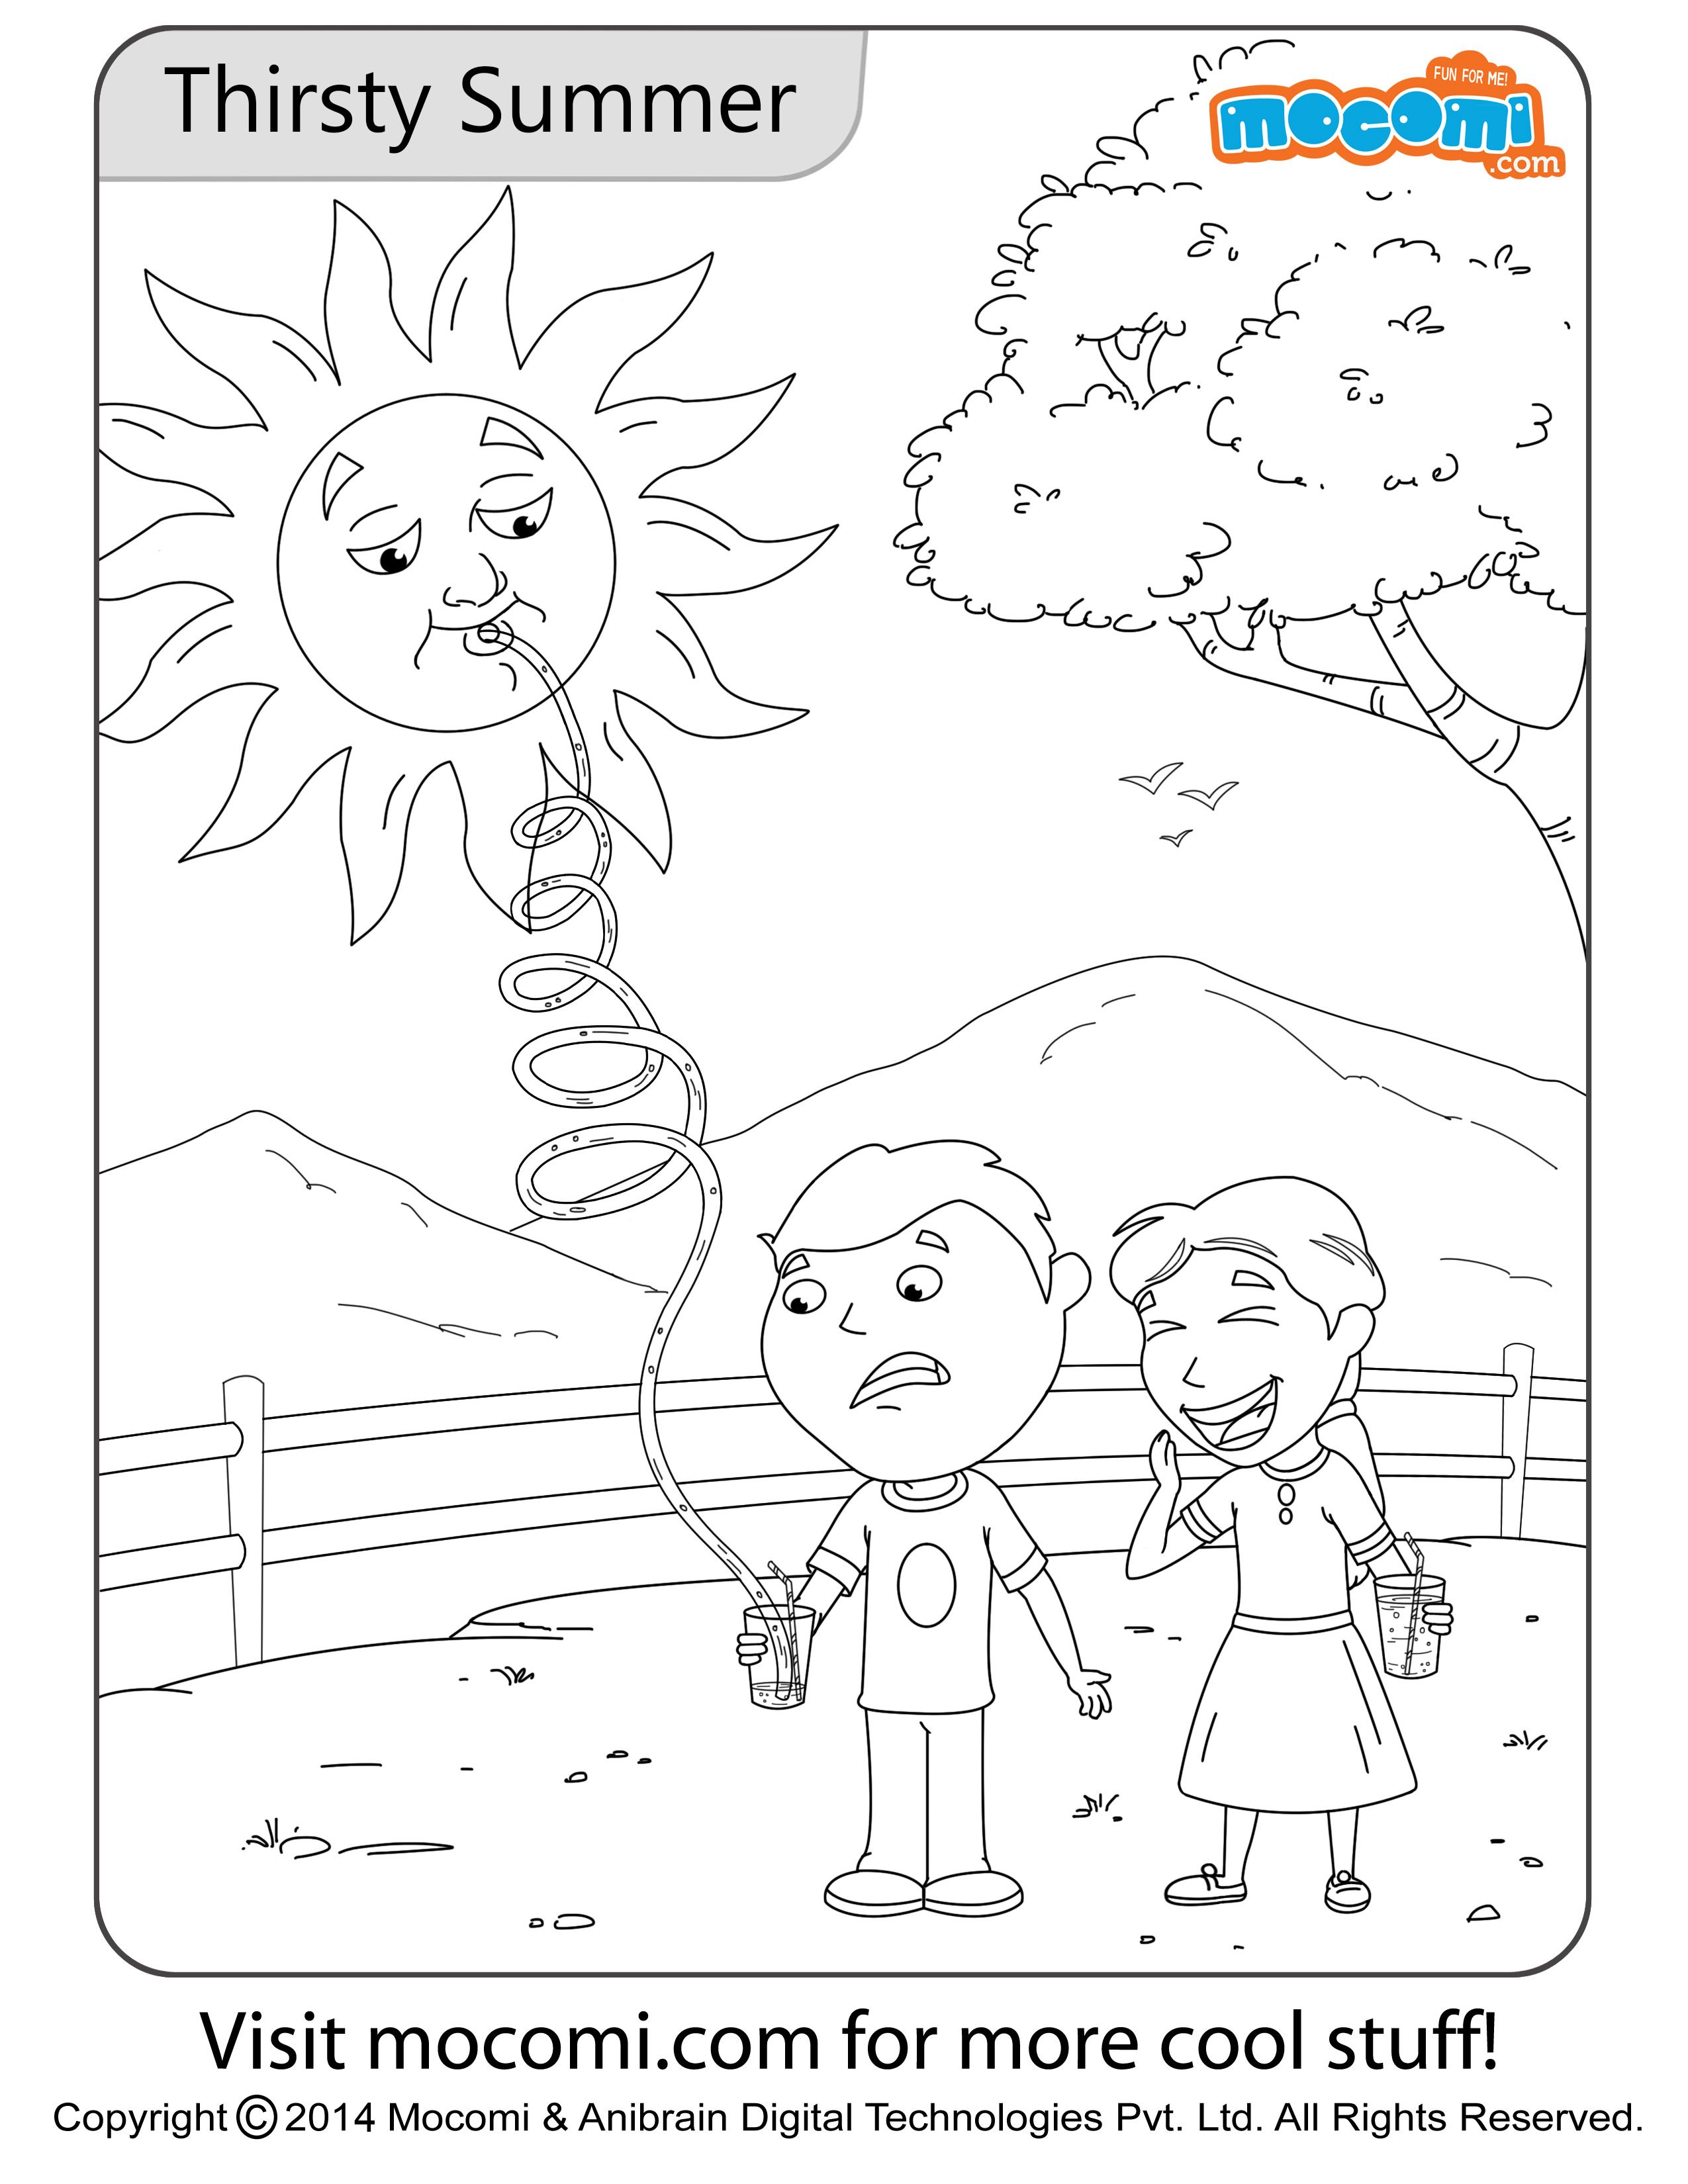 Thirsty summer colouring page jojo colouring pages for kids